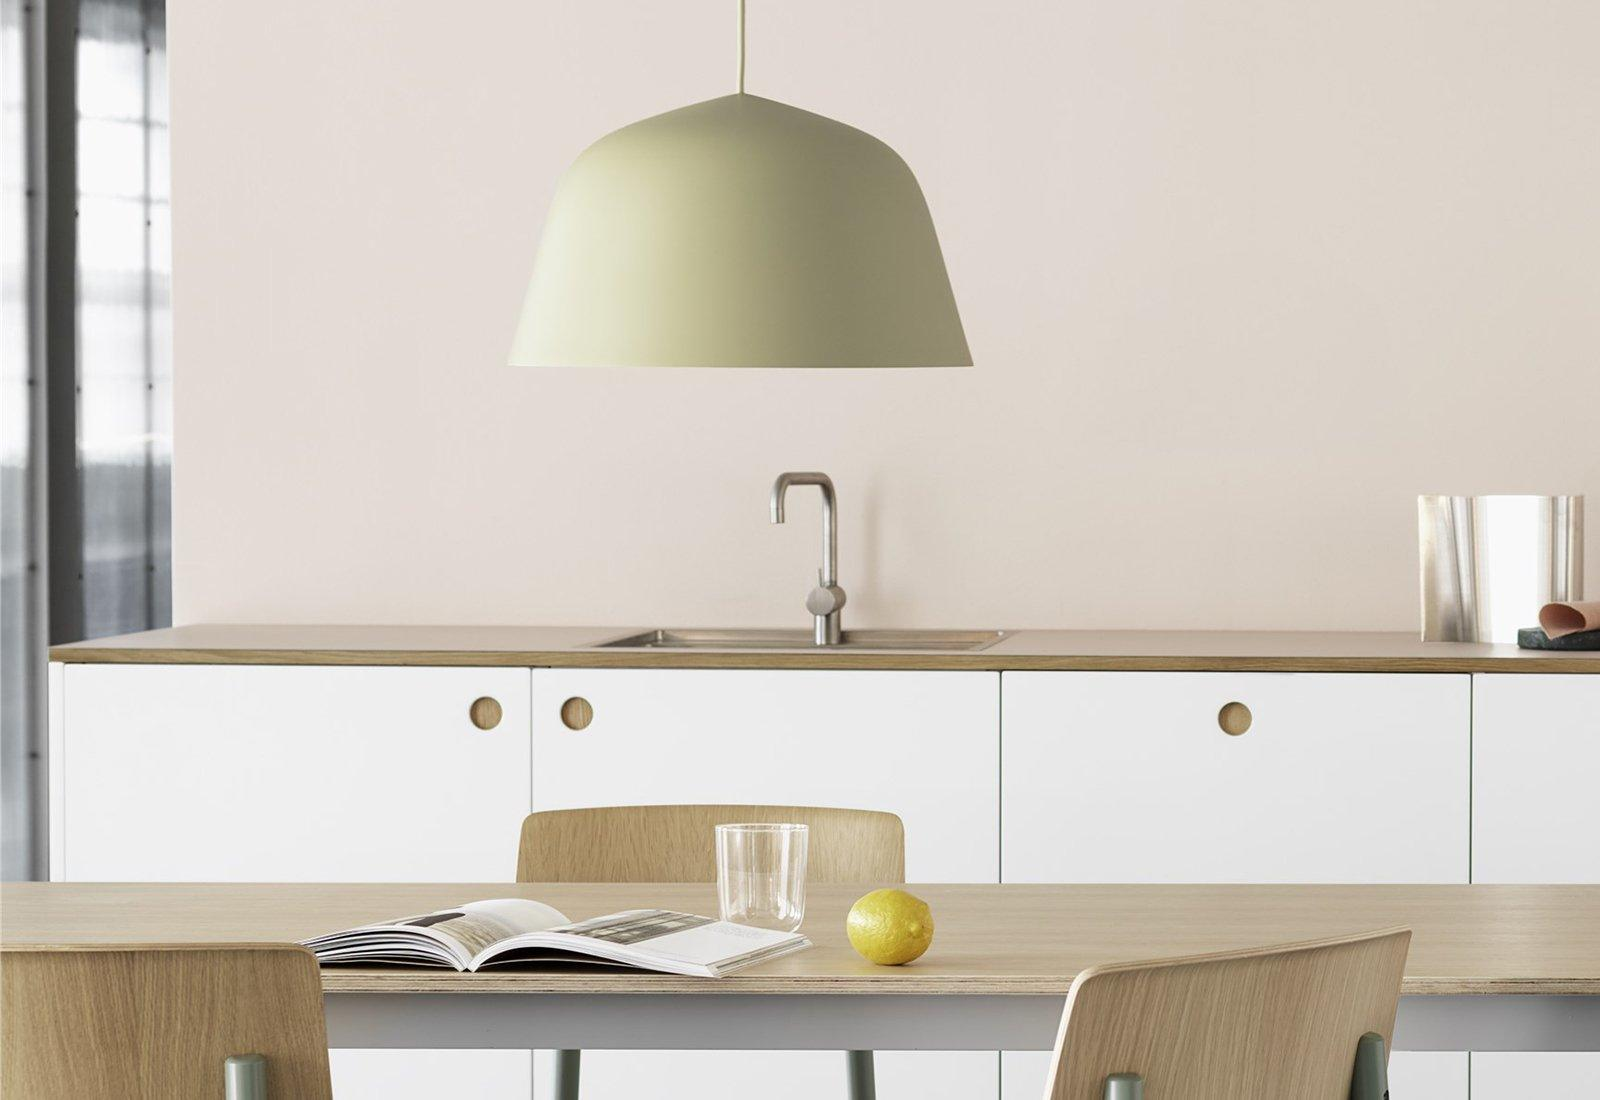 Ambit pendant light, 2015